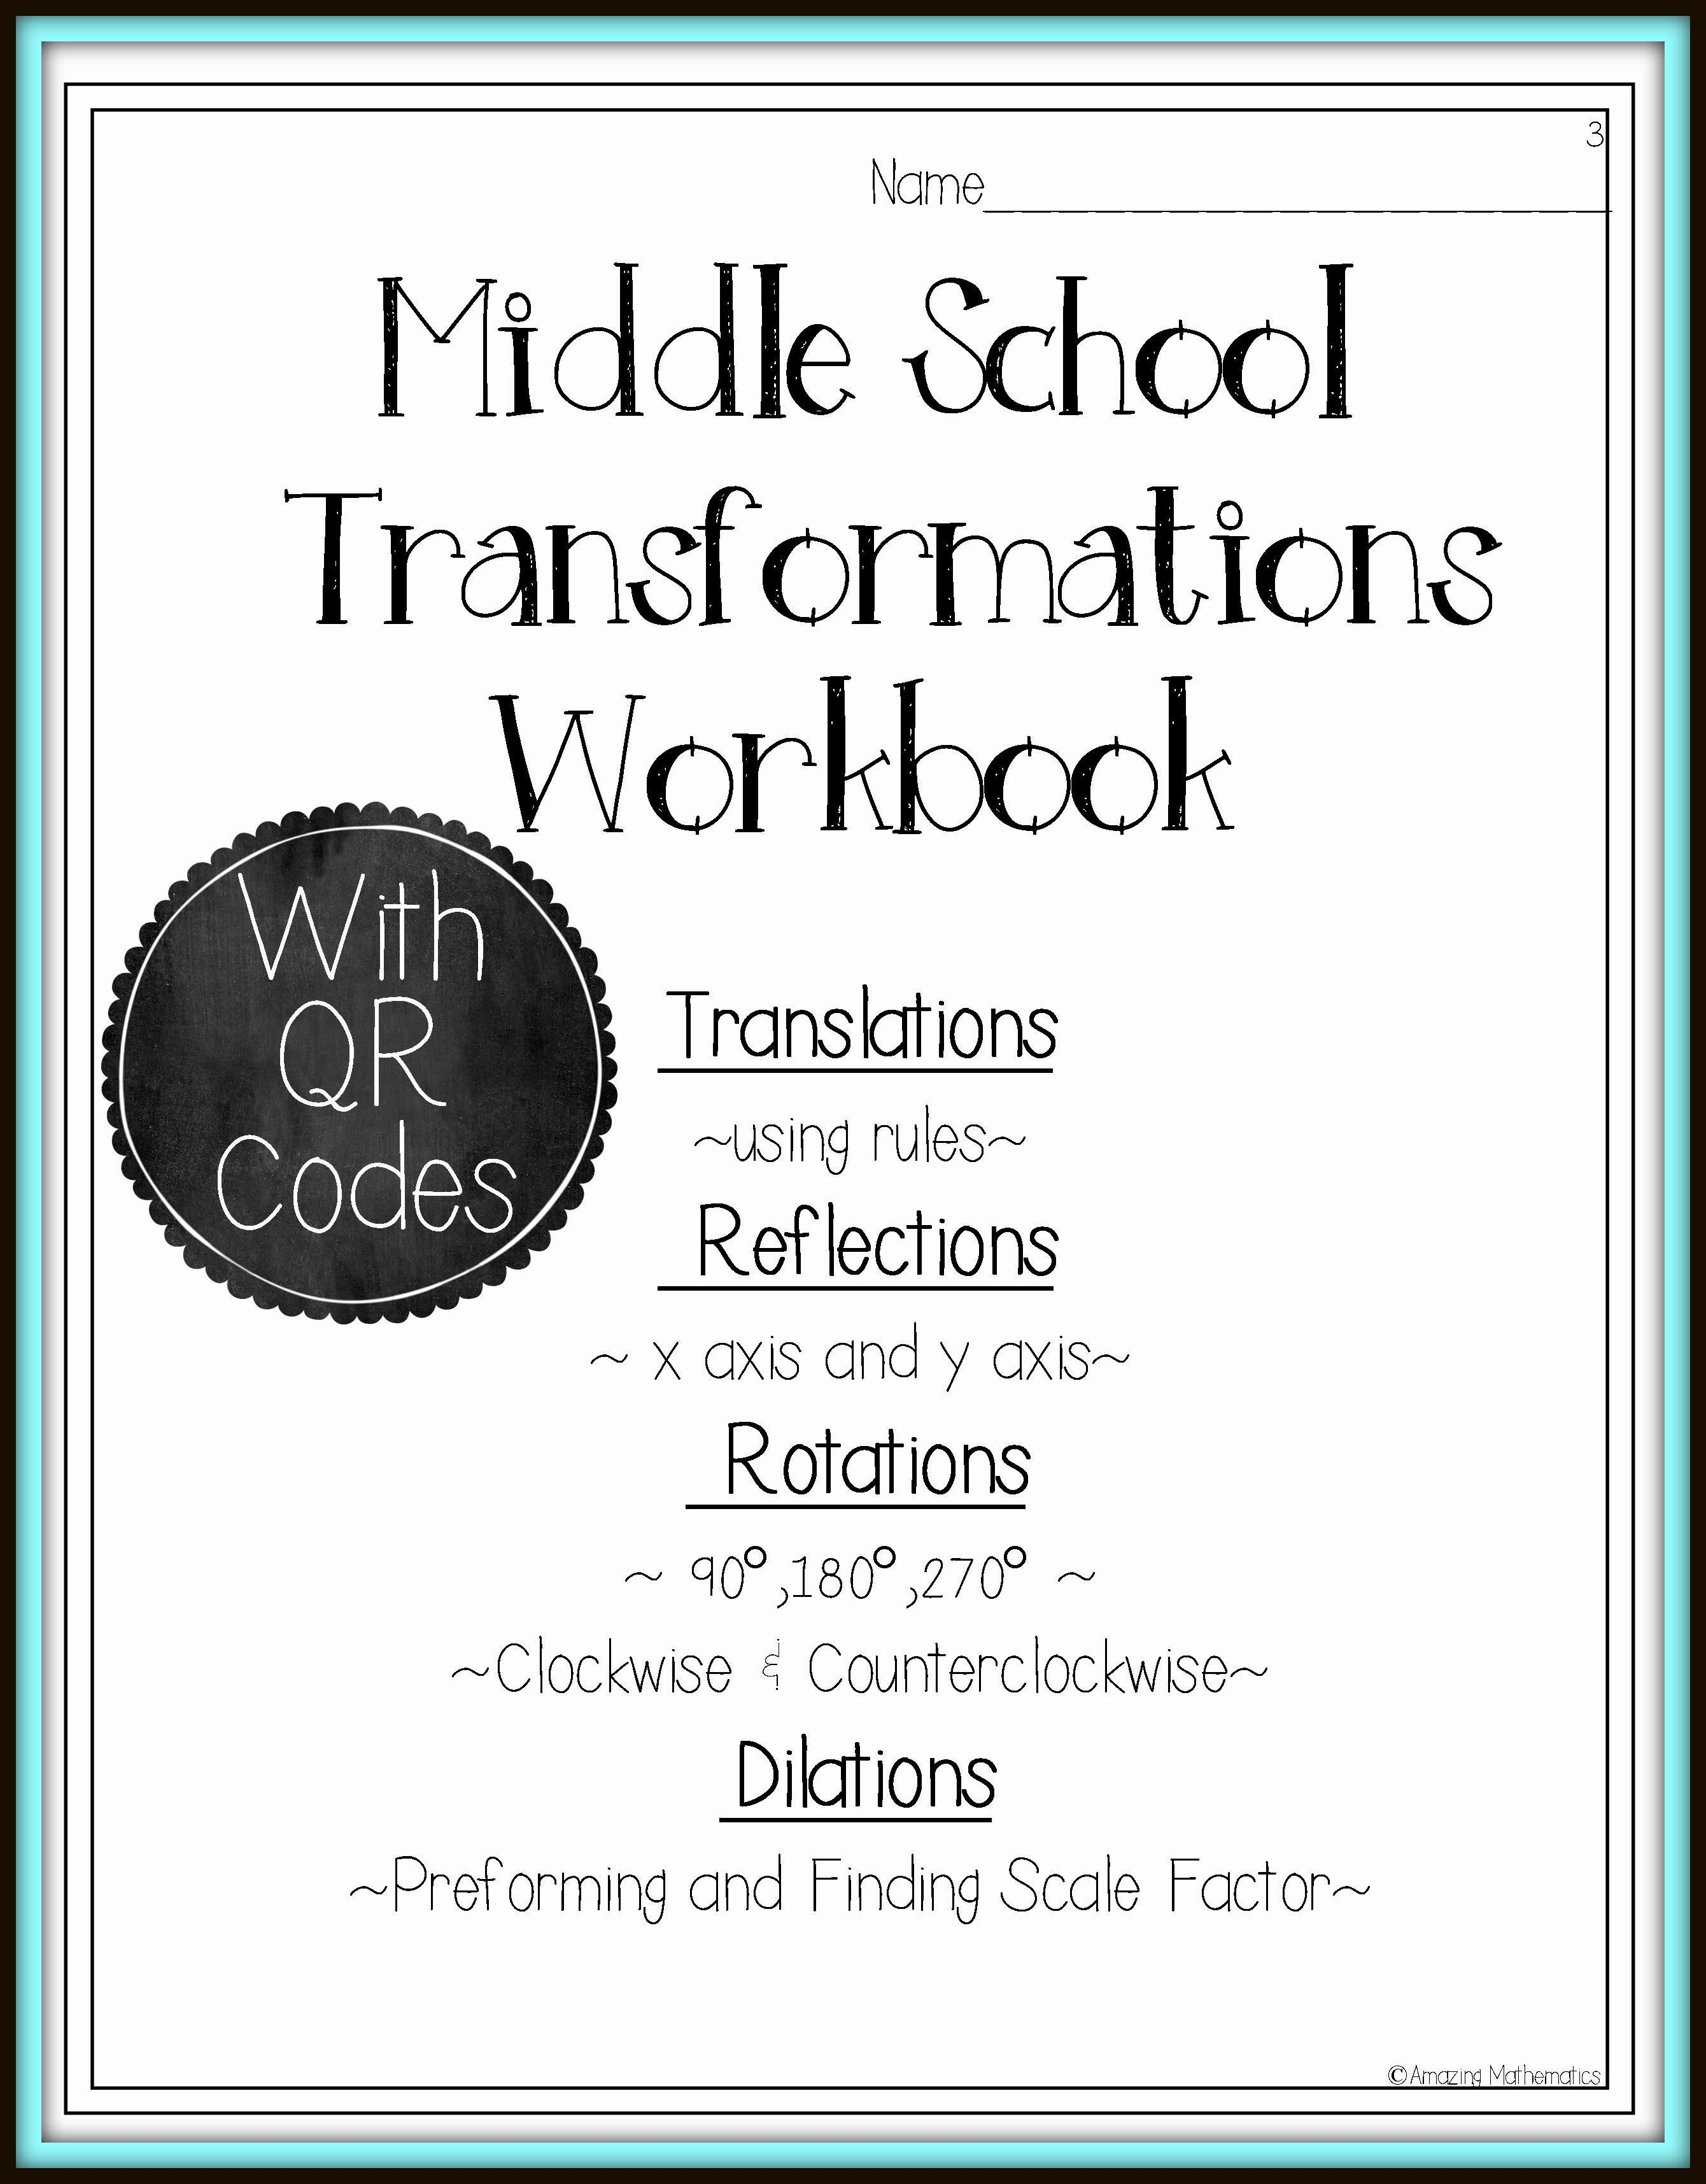 Transformations Workbook Reflections Rotations Translations And Dilations Workbook 8th Grade Math 8th Grade Math Worksheets [ 3430 x 2680 Pixel ]